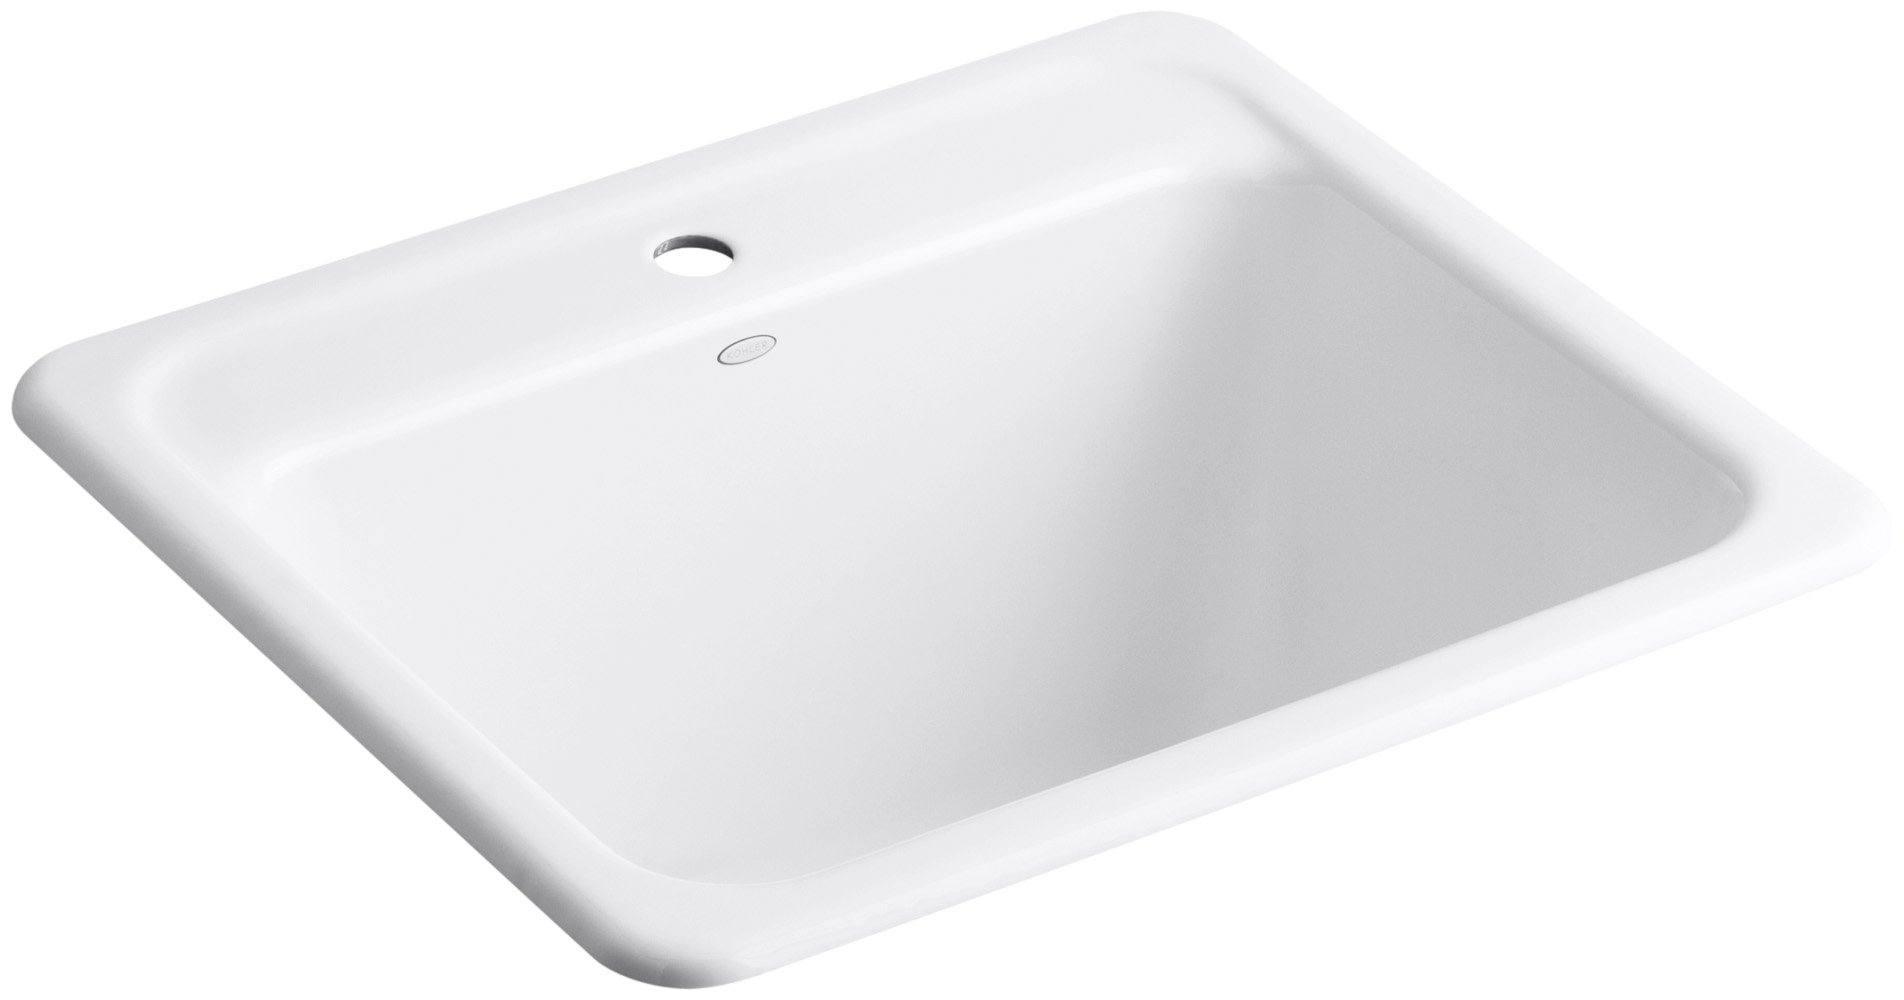 KOHLER K-19017-1-0 Glen Falls Top-Mount/Undermount Utility Sink with Single Faucet Hole, White by Kohler